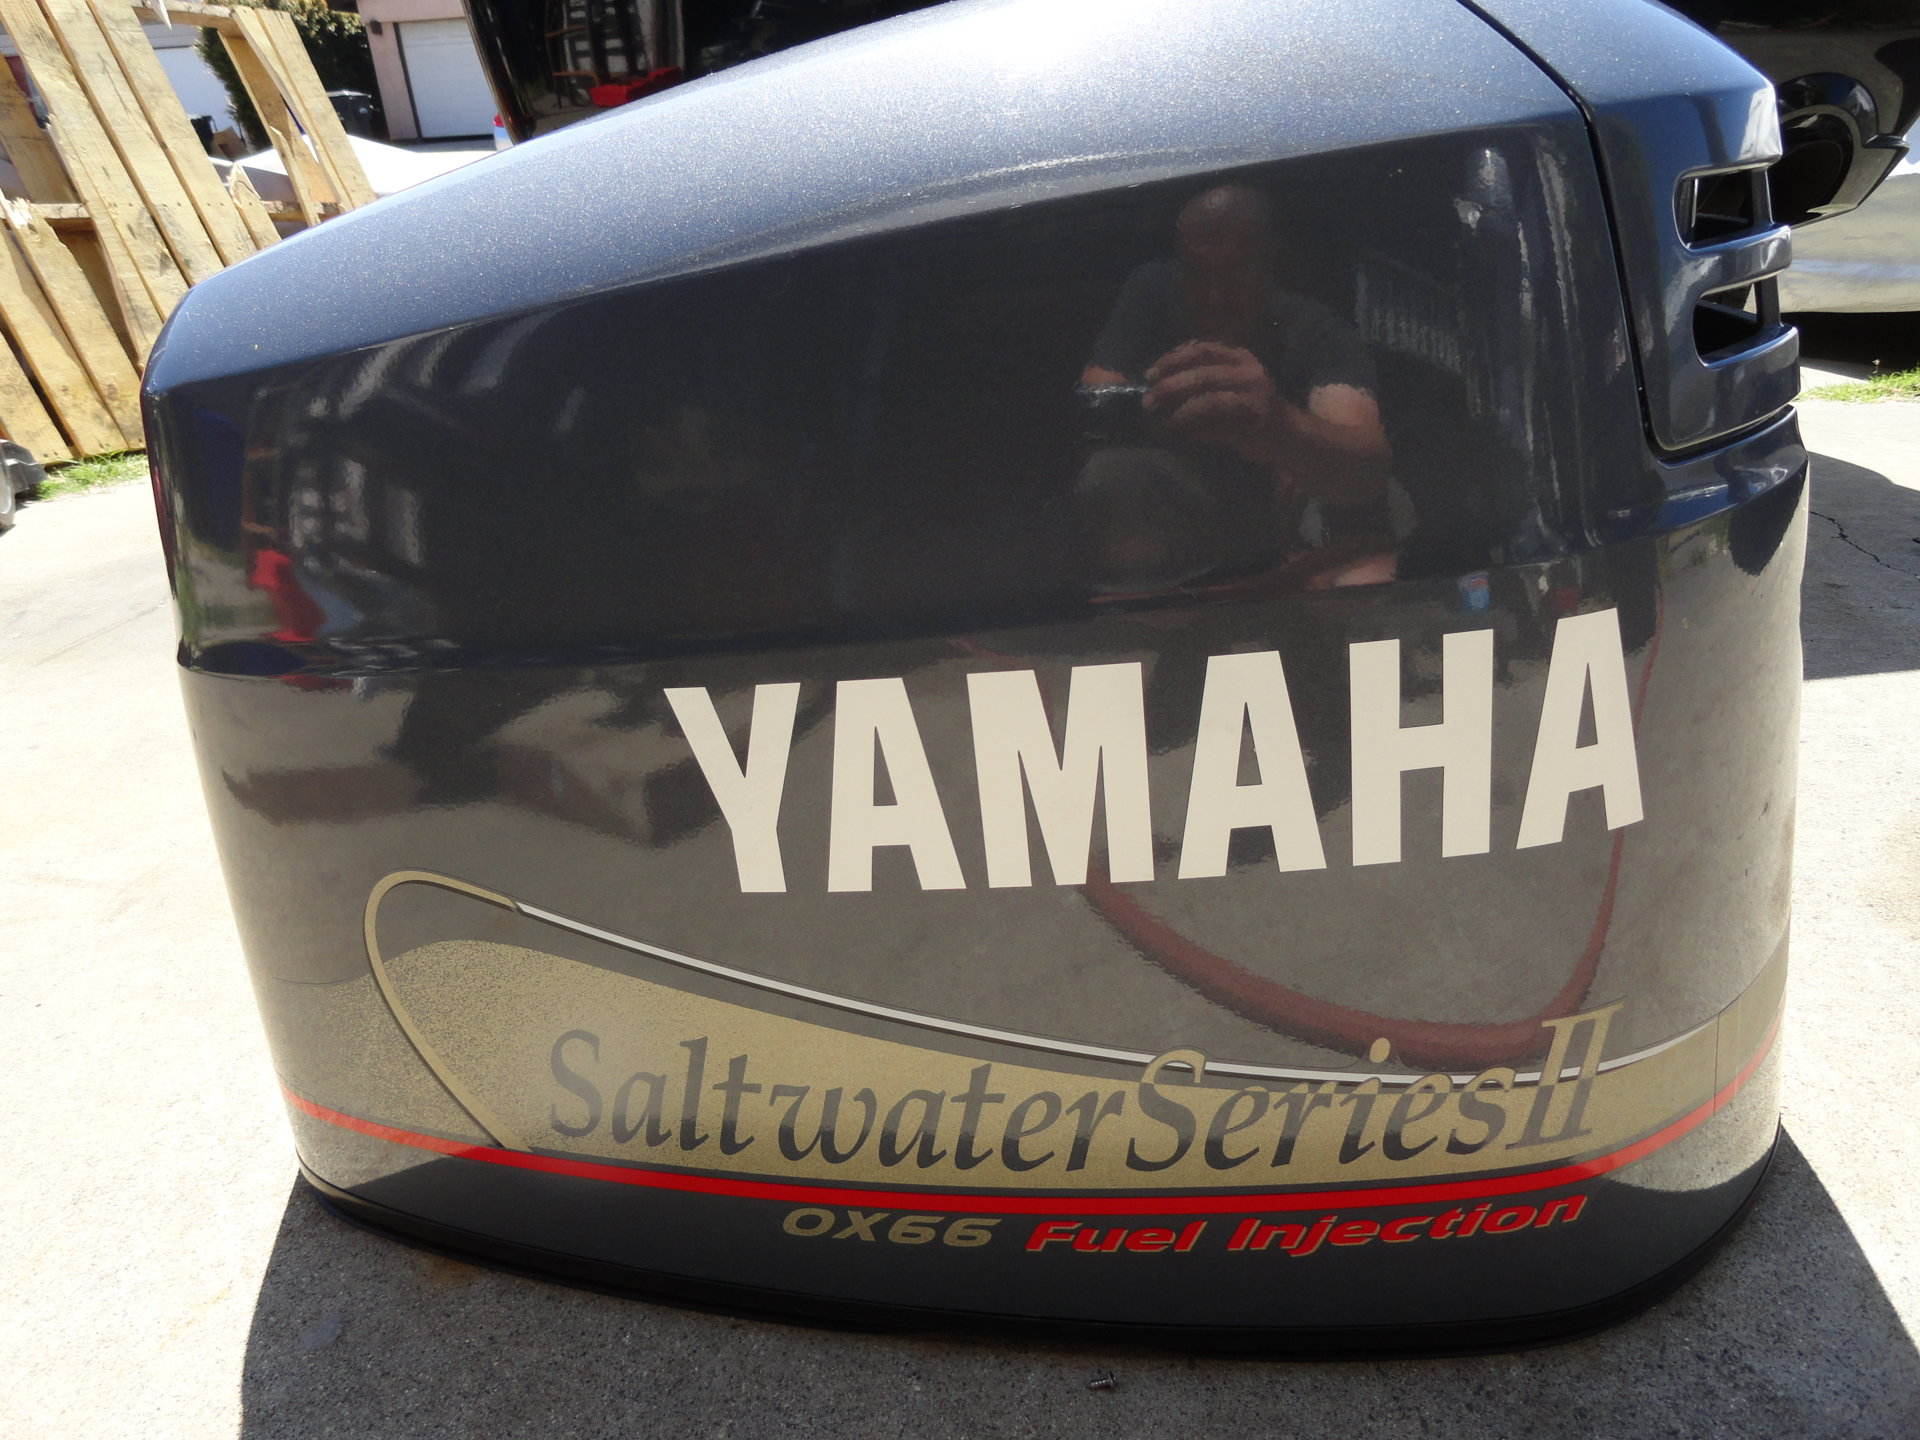 Yamaha 150 Outboard OX66 Fuel Injected 2000 Complete SALTWATER